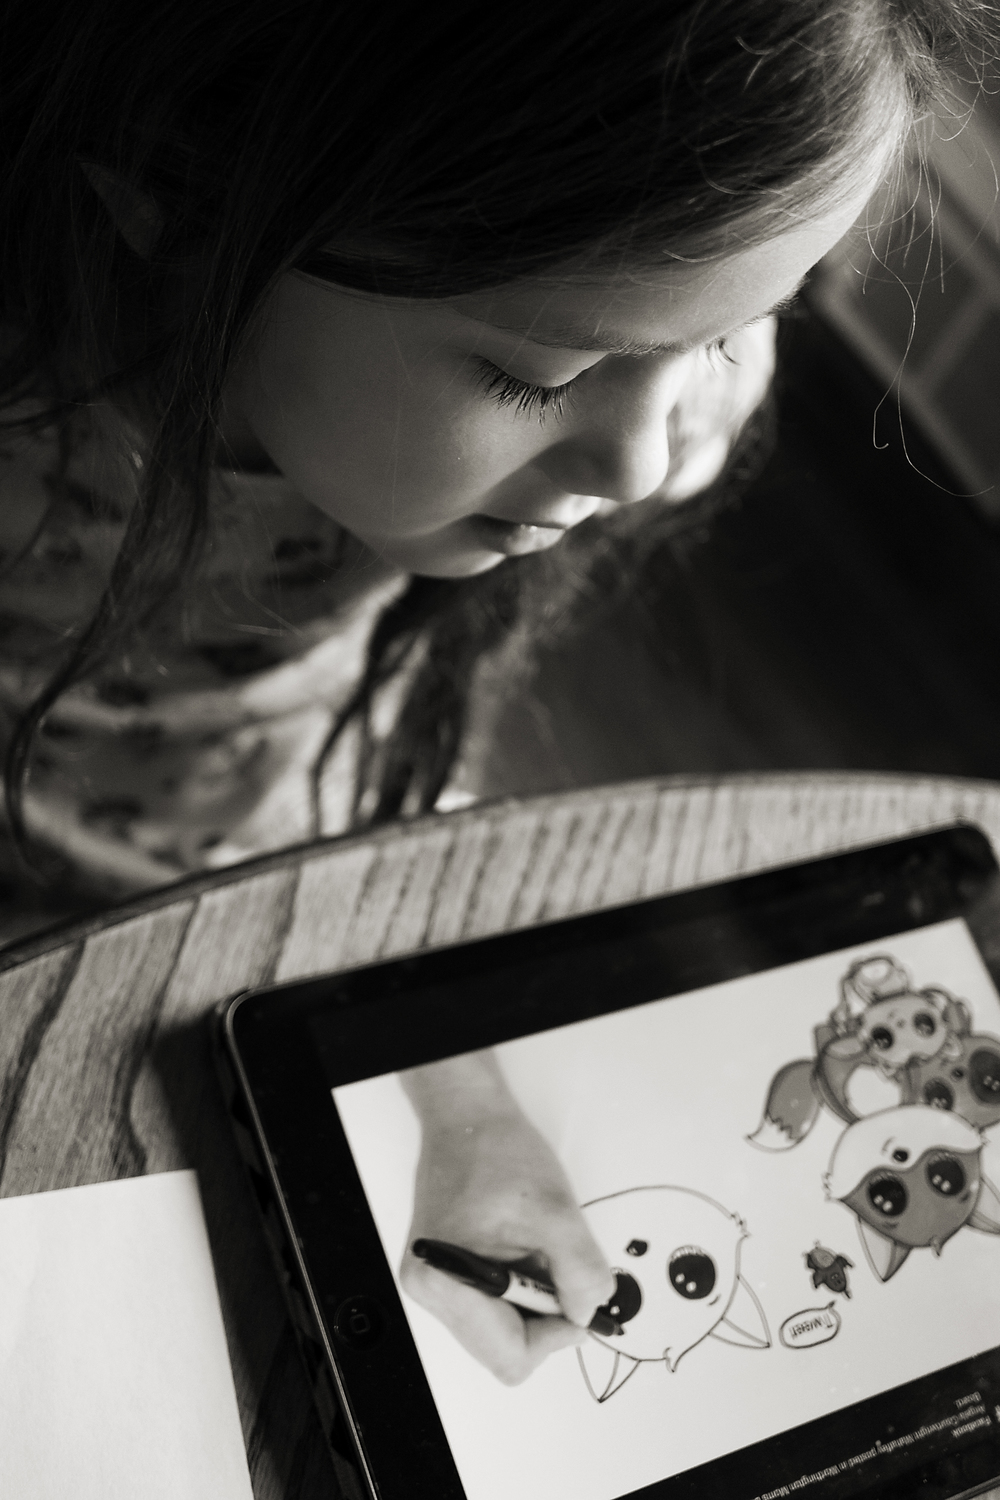 Columbus photographer takes pictures of daughter copying a fox drawing on her ipad in their worthington, ohio home.